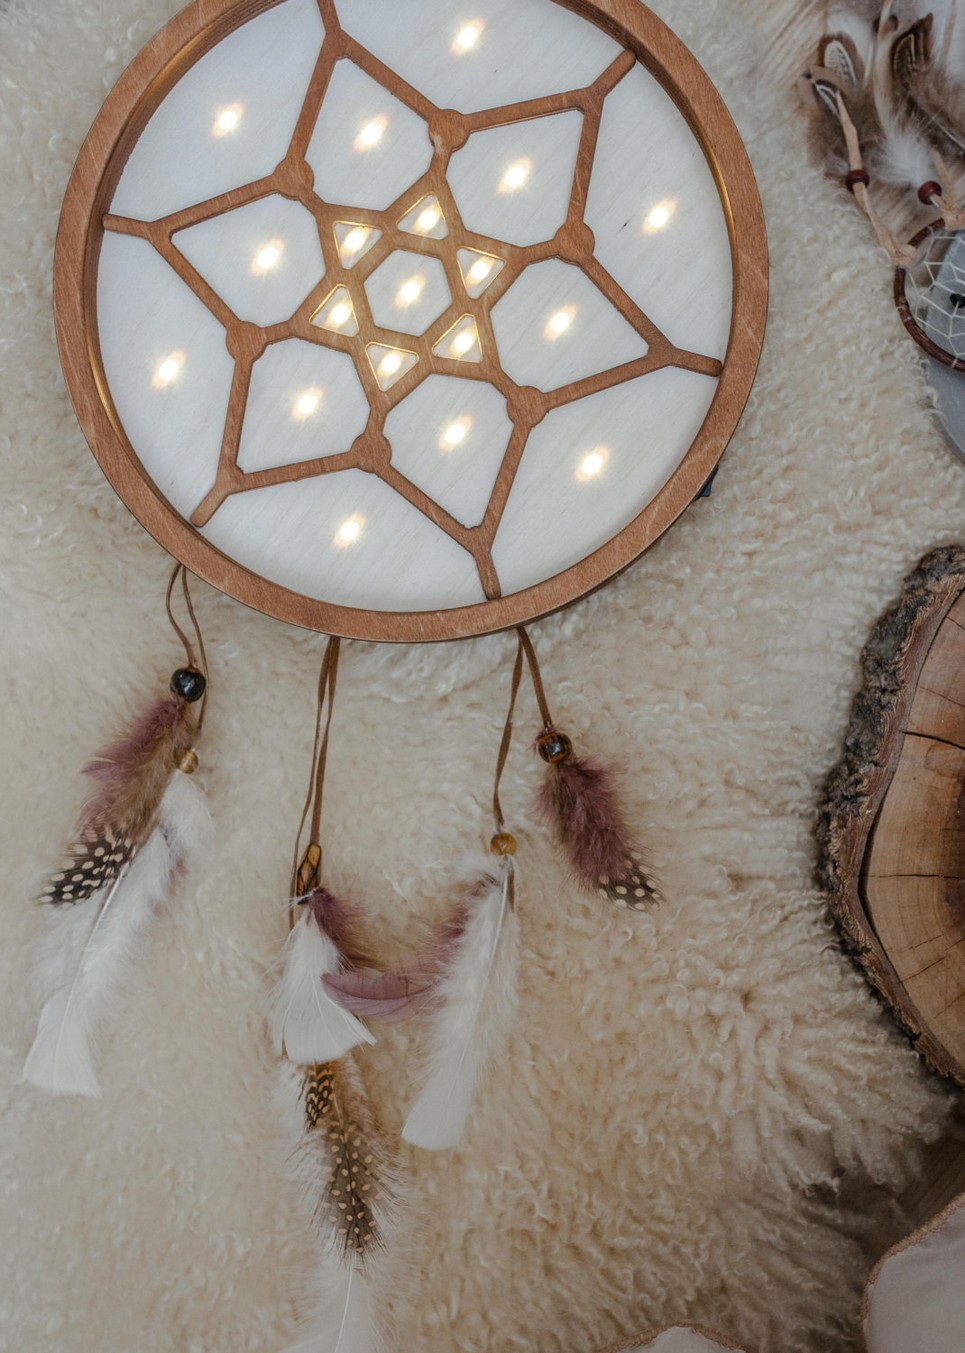 Boho Dreamcatcher Decorative Night Light